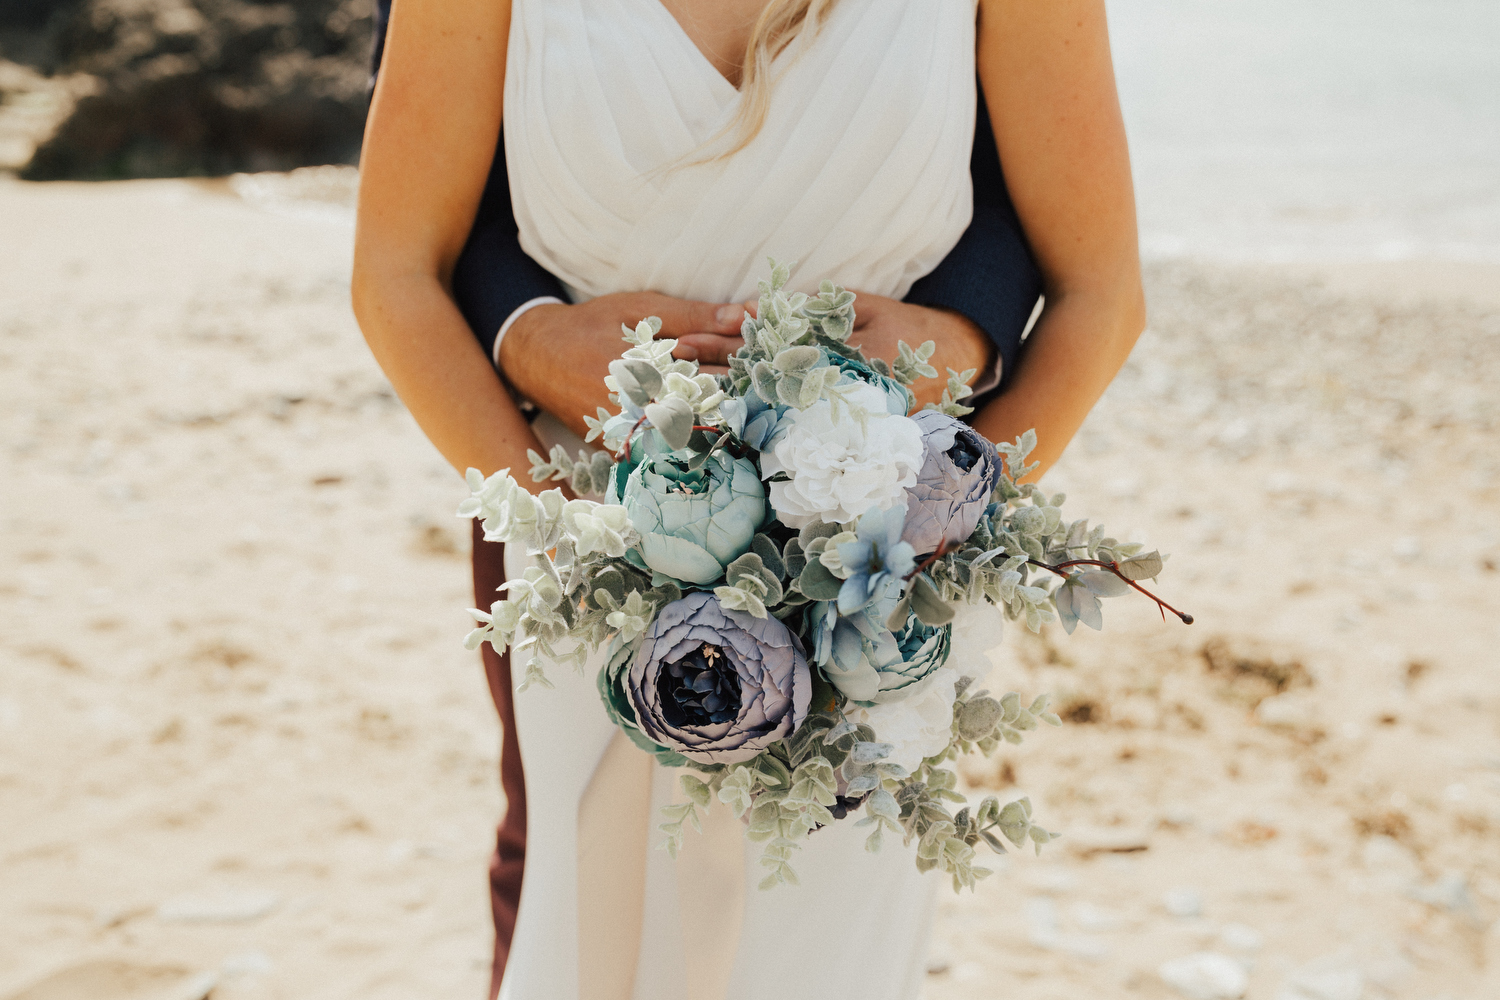 Real wedding on the beach at Polhawn Fort in Cornwall